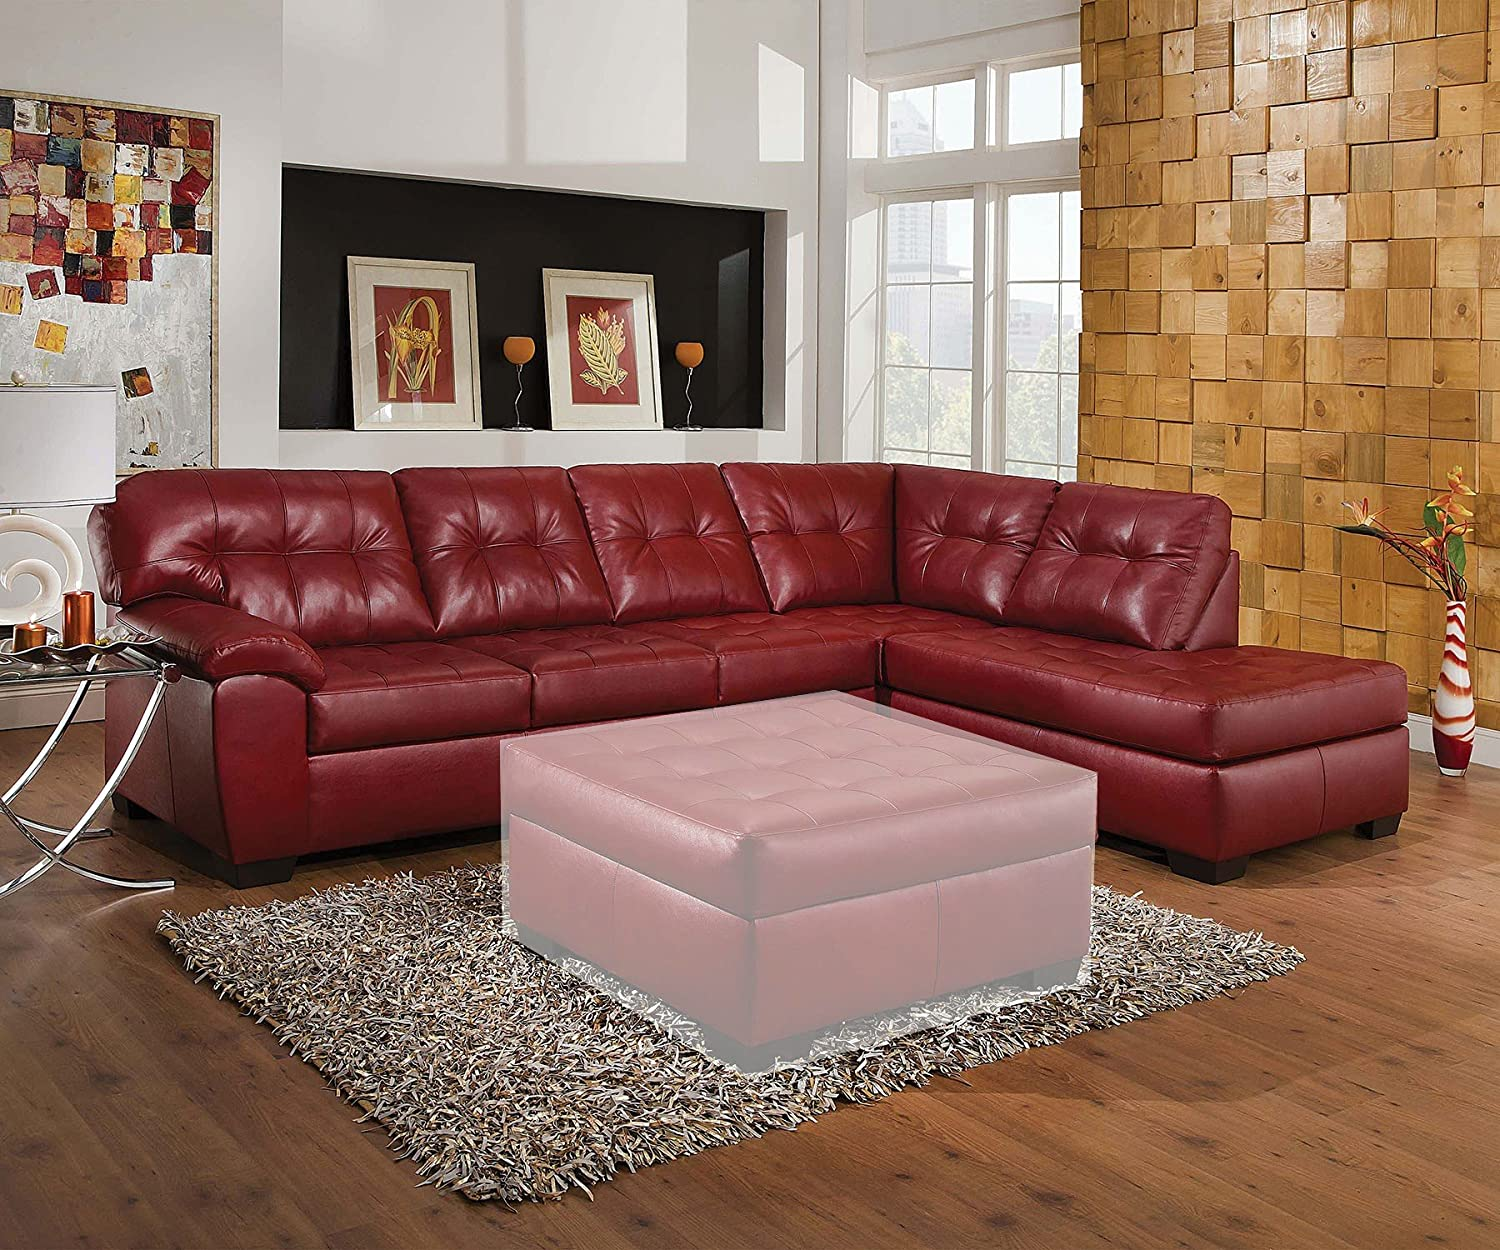 1PerfectChoice Shi Soho Cardinal Leather Sectional Sofa Right Chaise